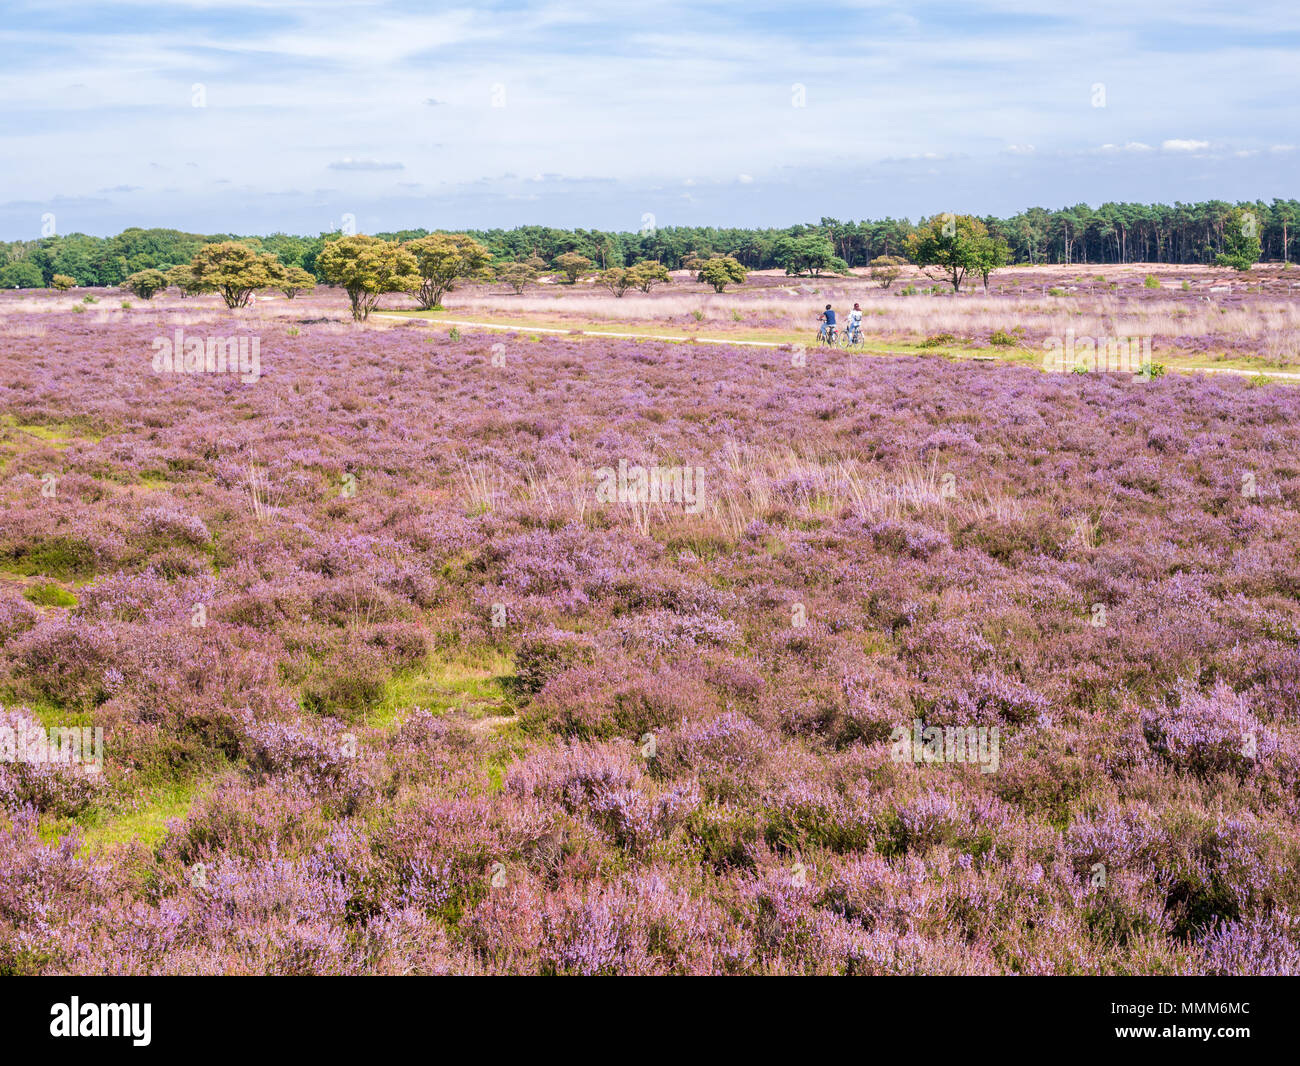 People riding bicycle on path and panorama of purple heather in bloom in nature reserve Zuiderheide near Hilversum, Gooi, Netherlands Stock Photo